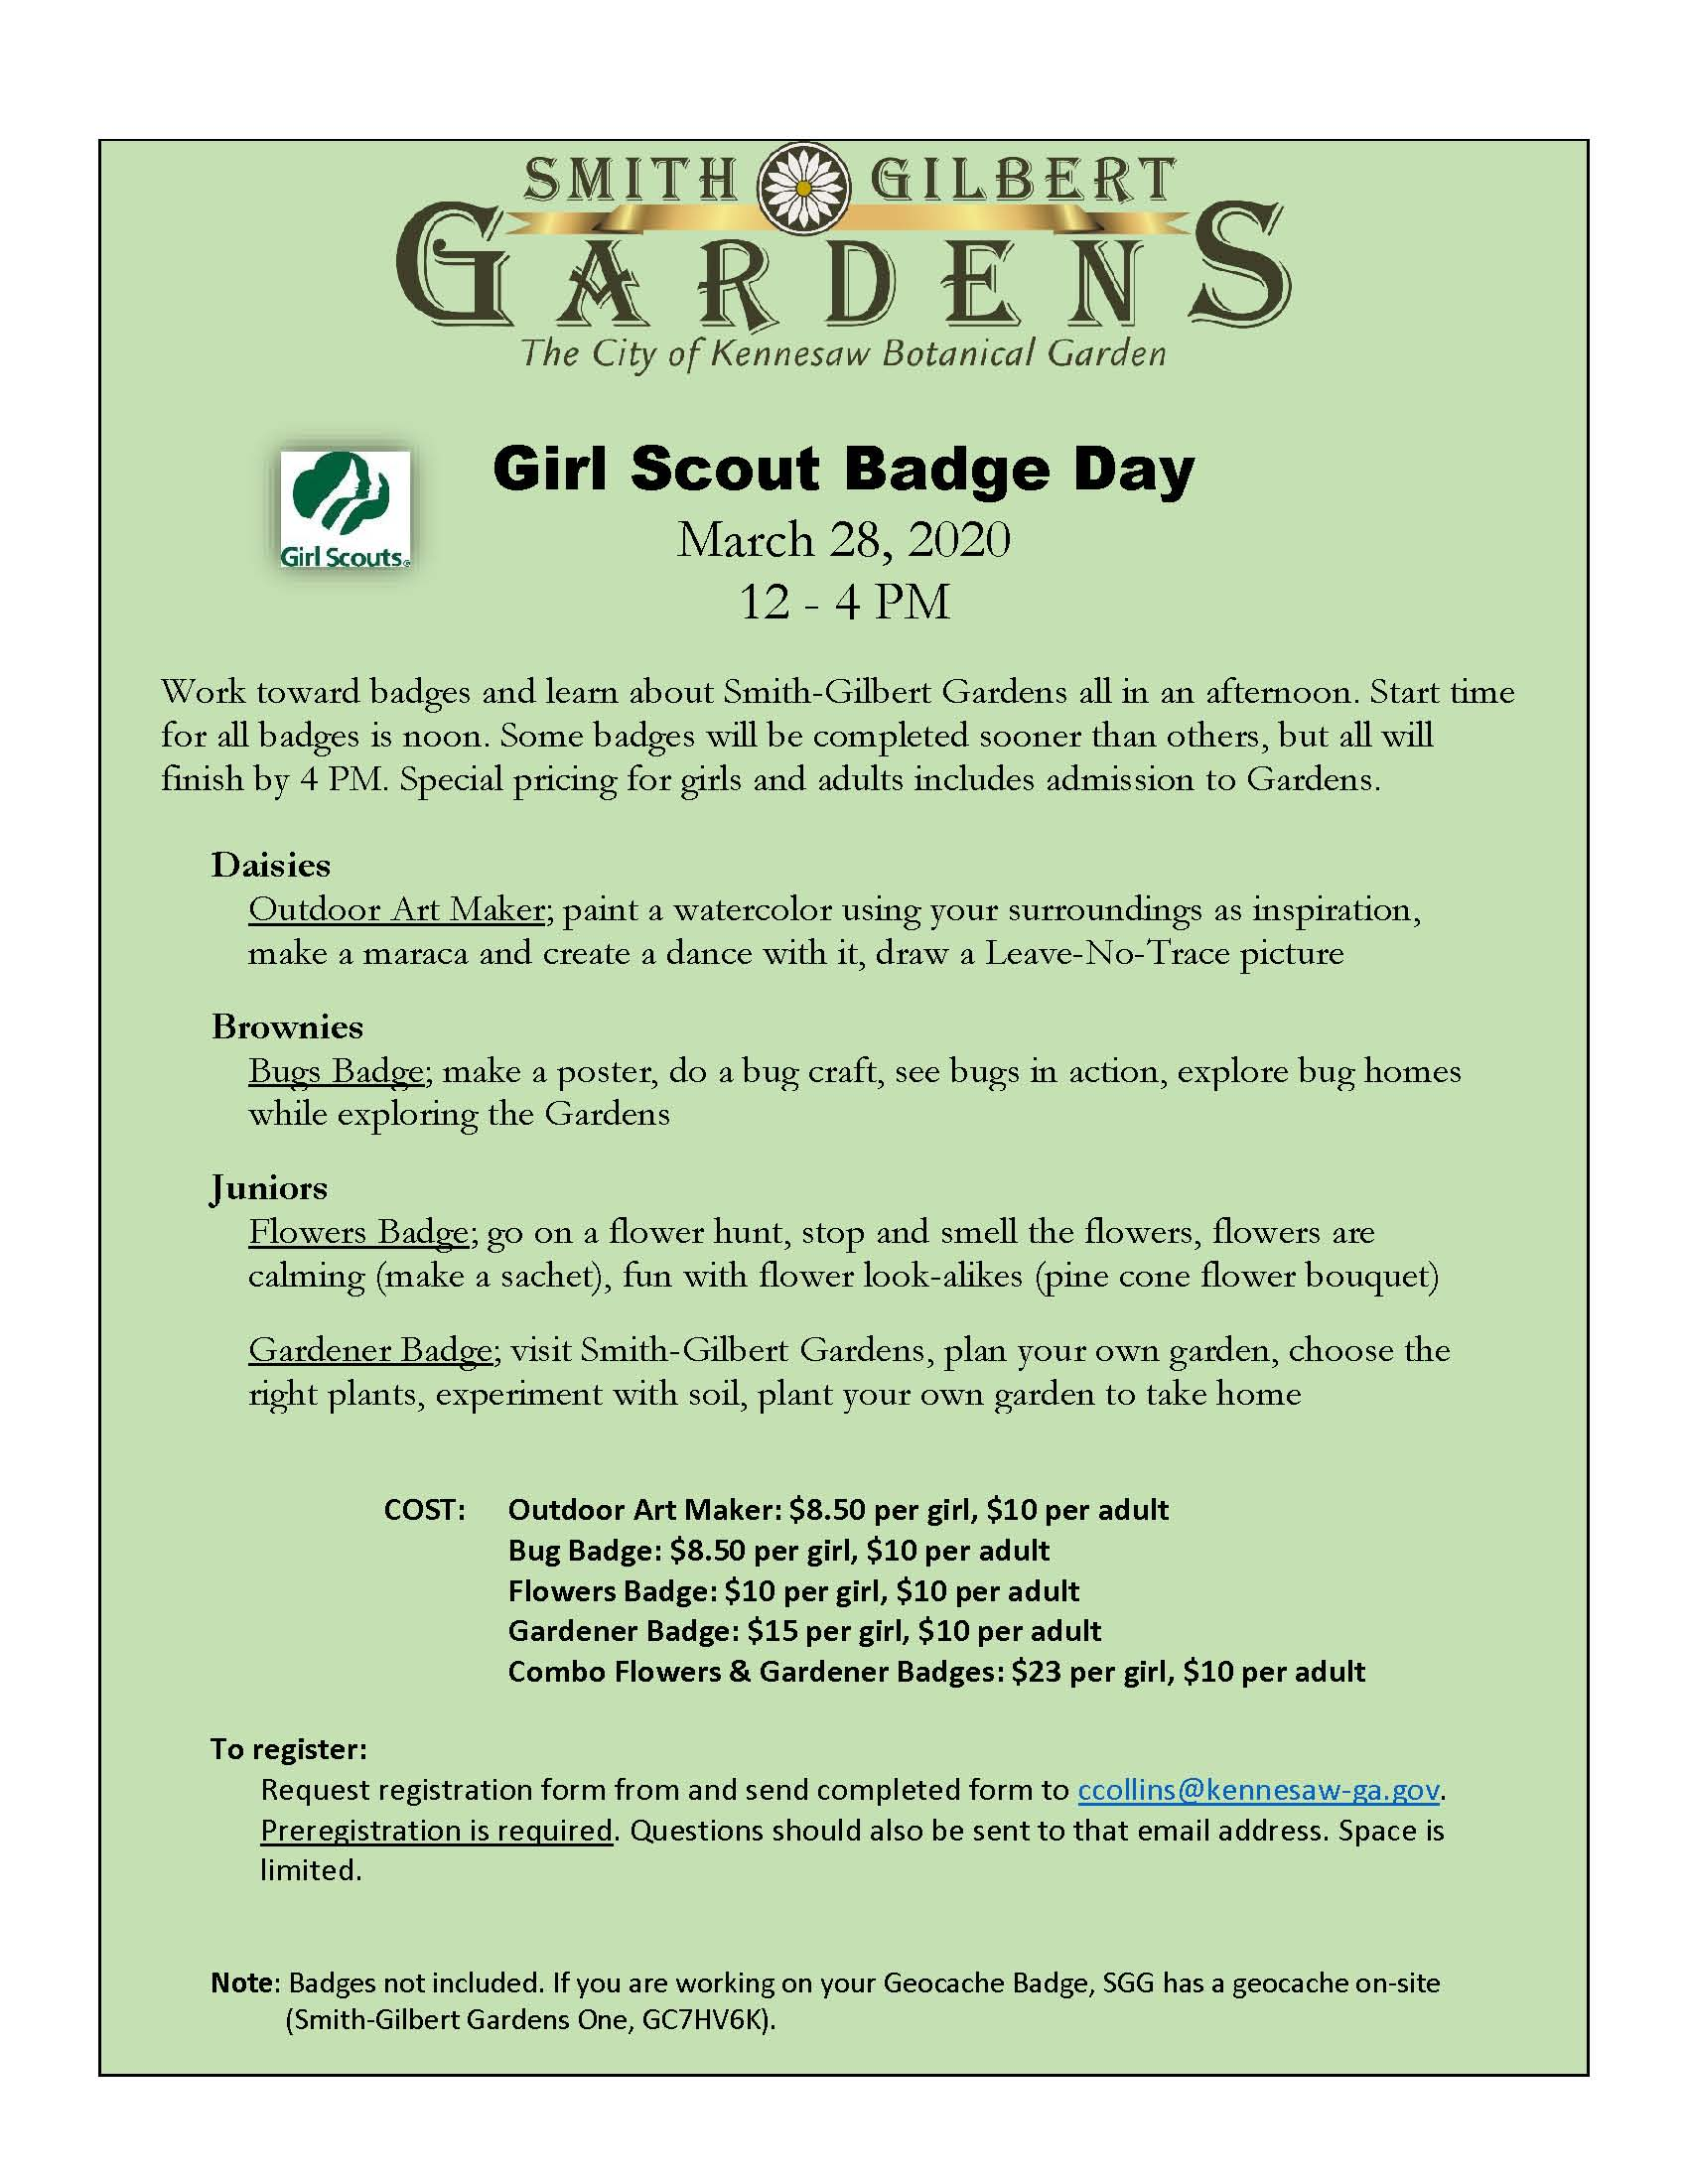 Girl Scout Badge Day flyer